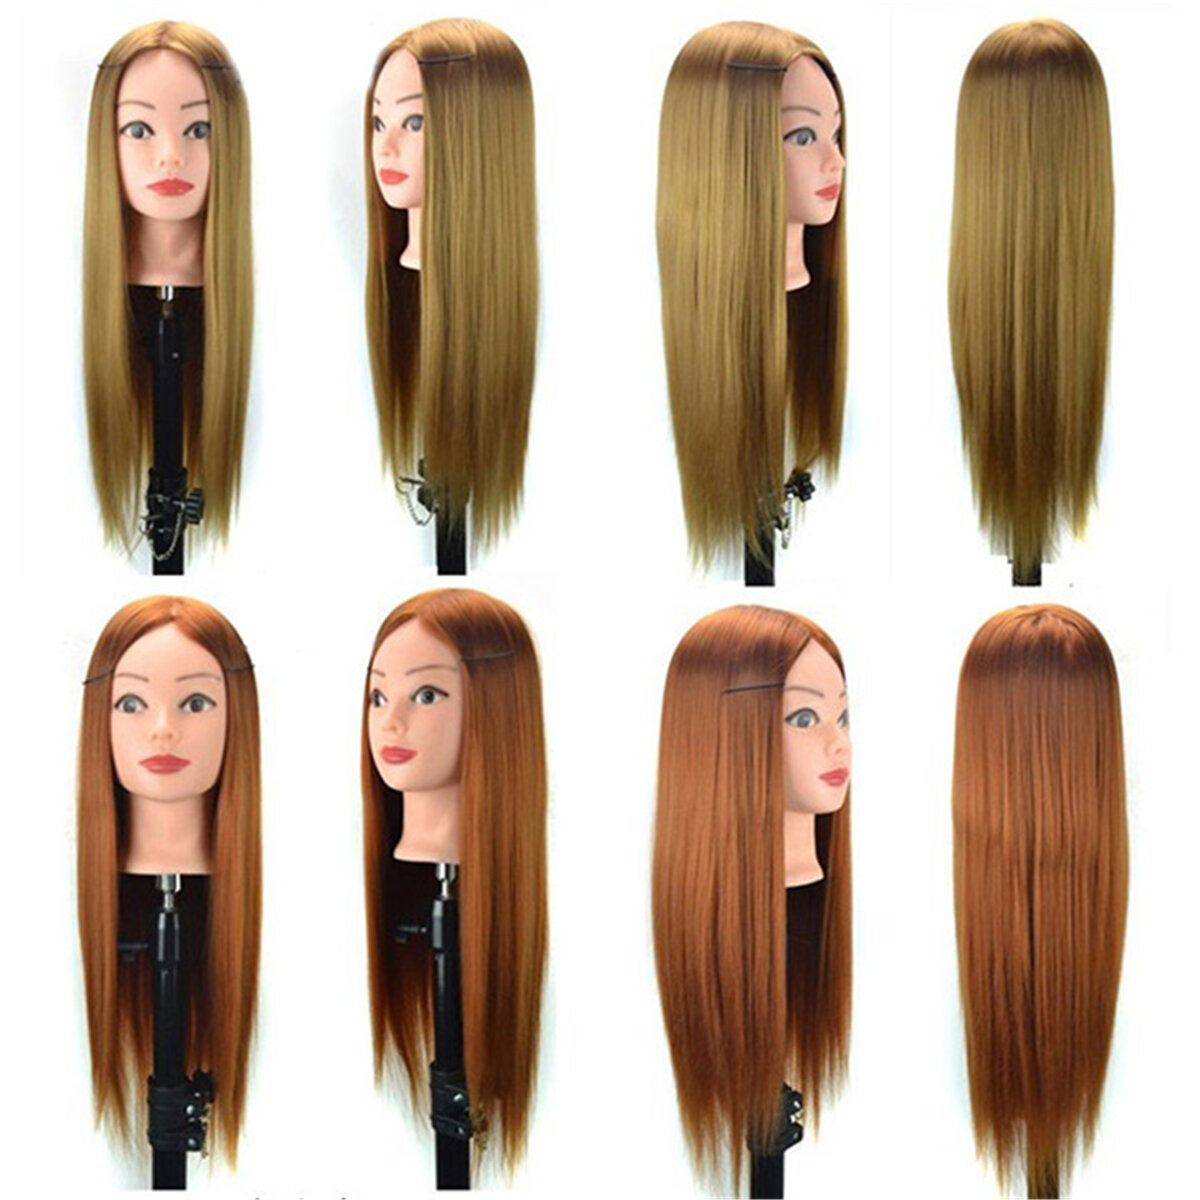 Cosmetology Mannequin Head with Hair for Braiding Cornrow Practice Head Training Mannequin Dummy Heads - 4